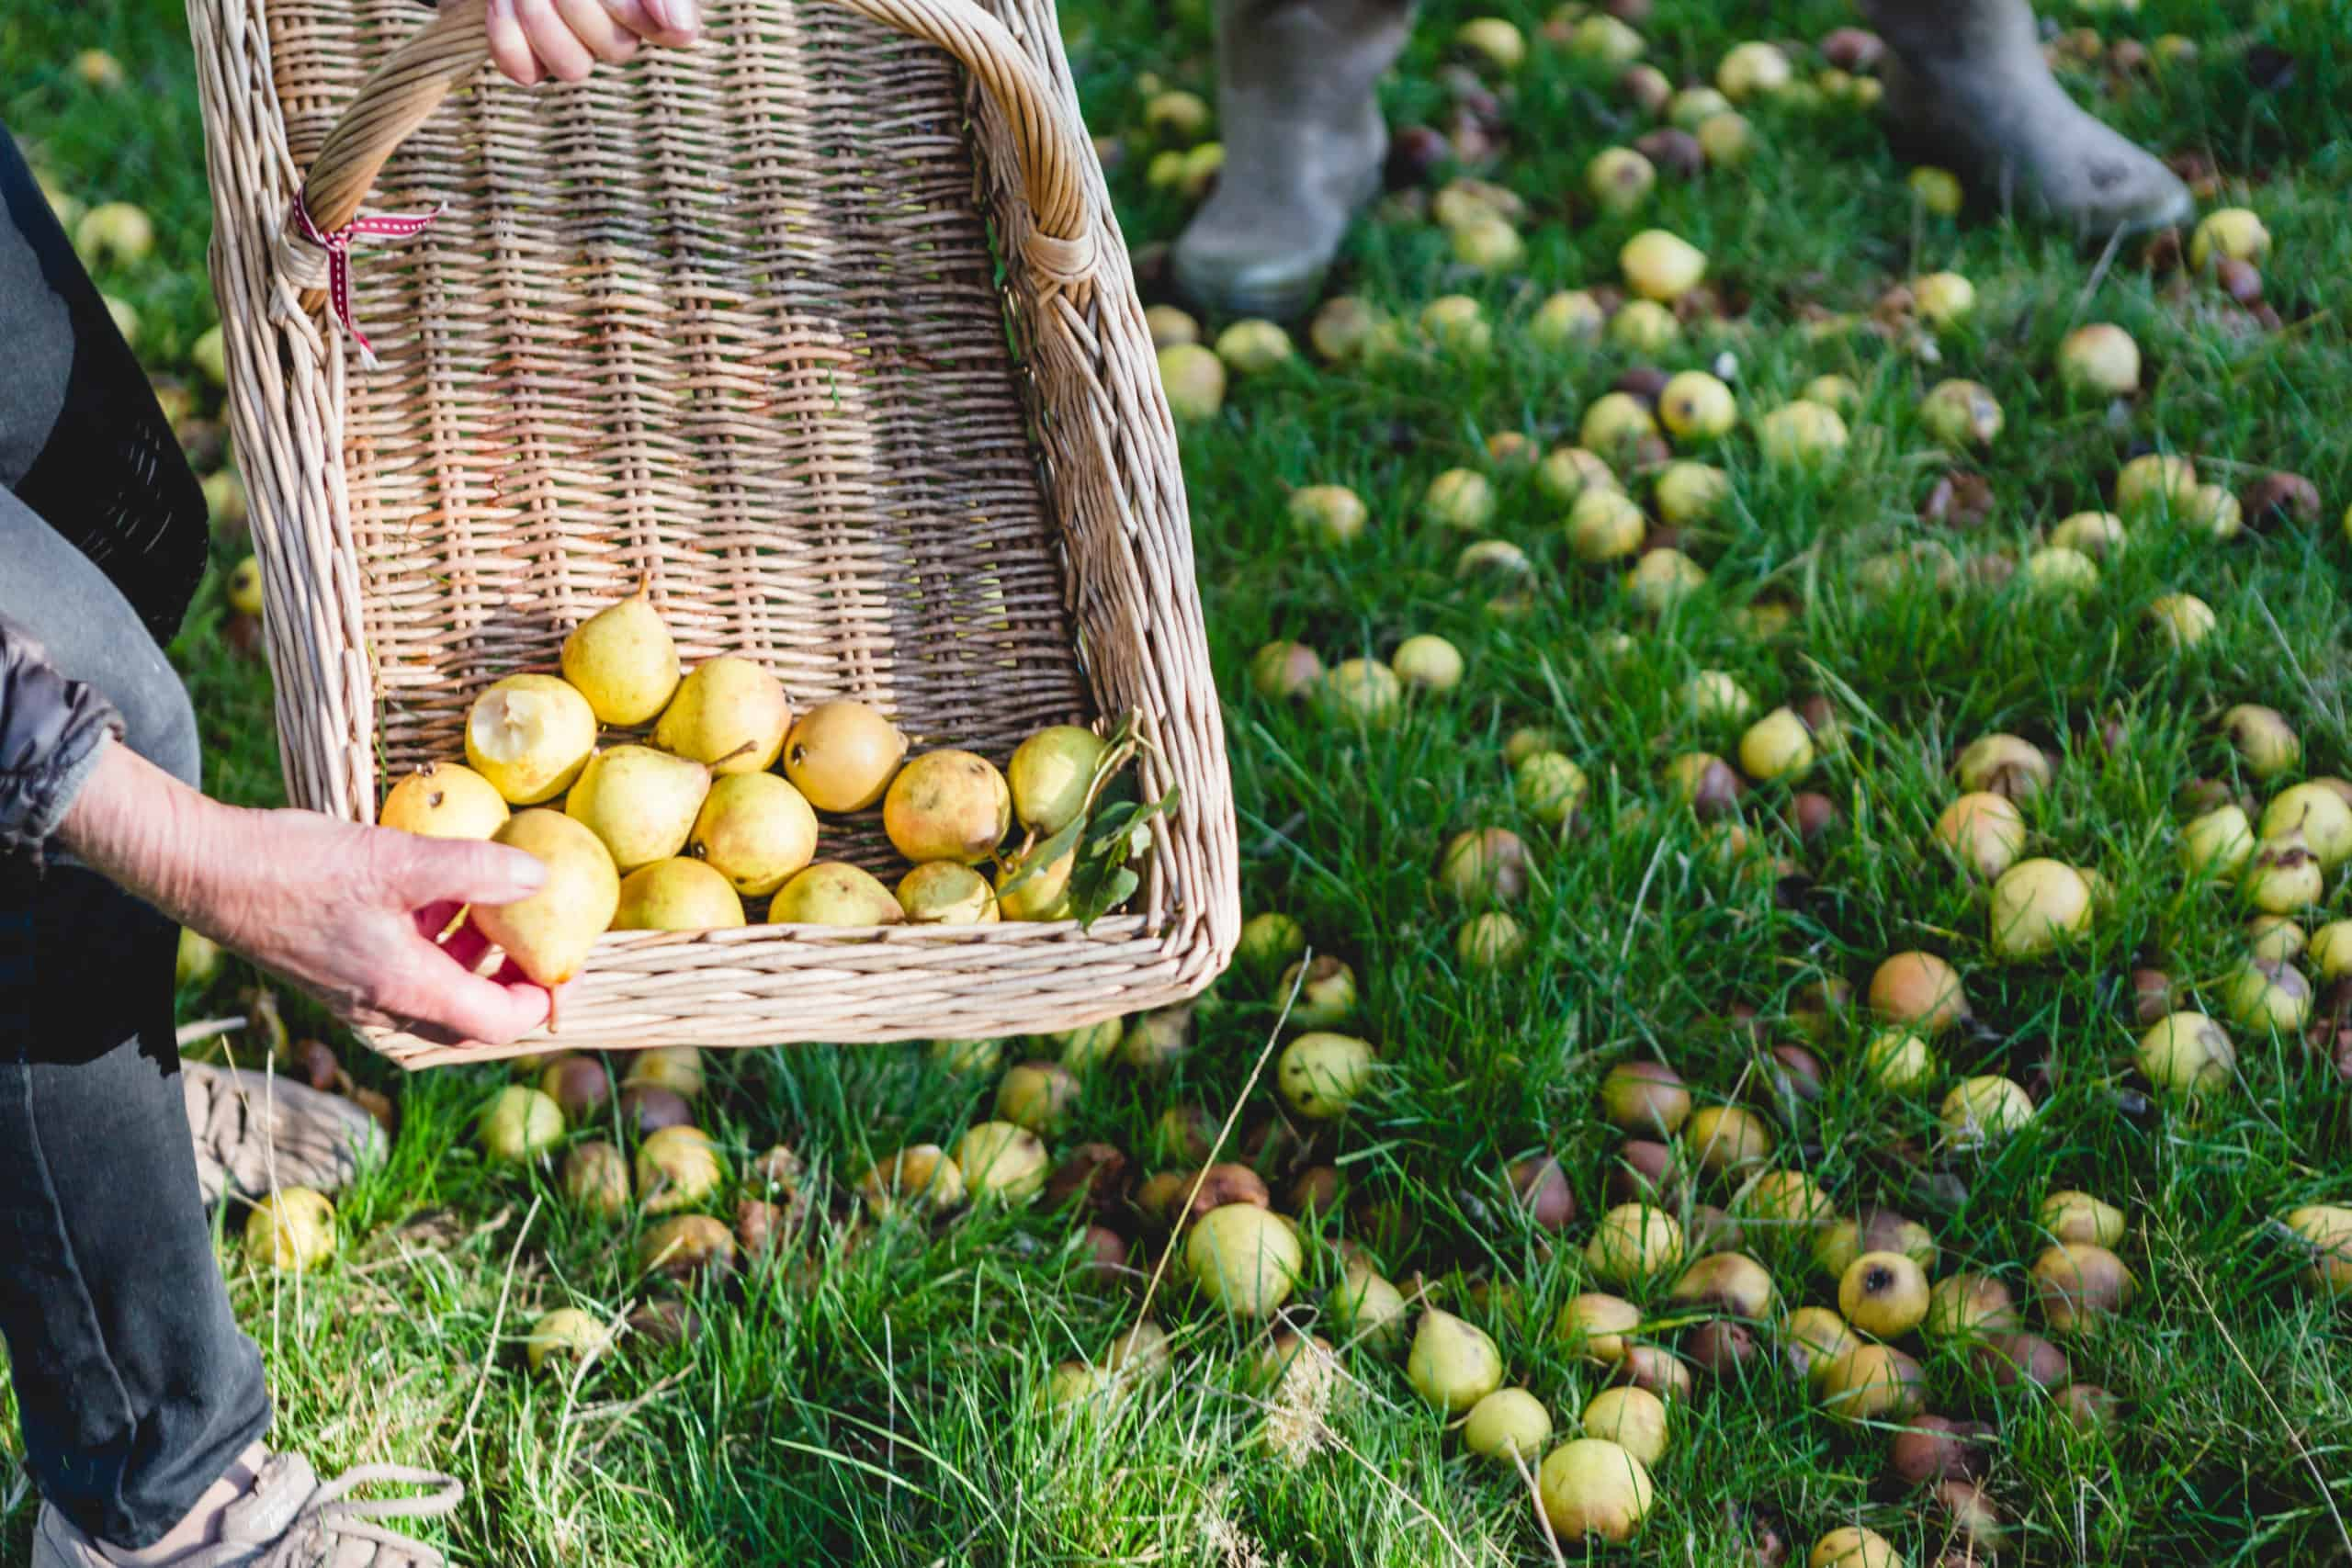 Locally picked fruit from the orchards